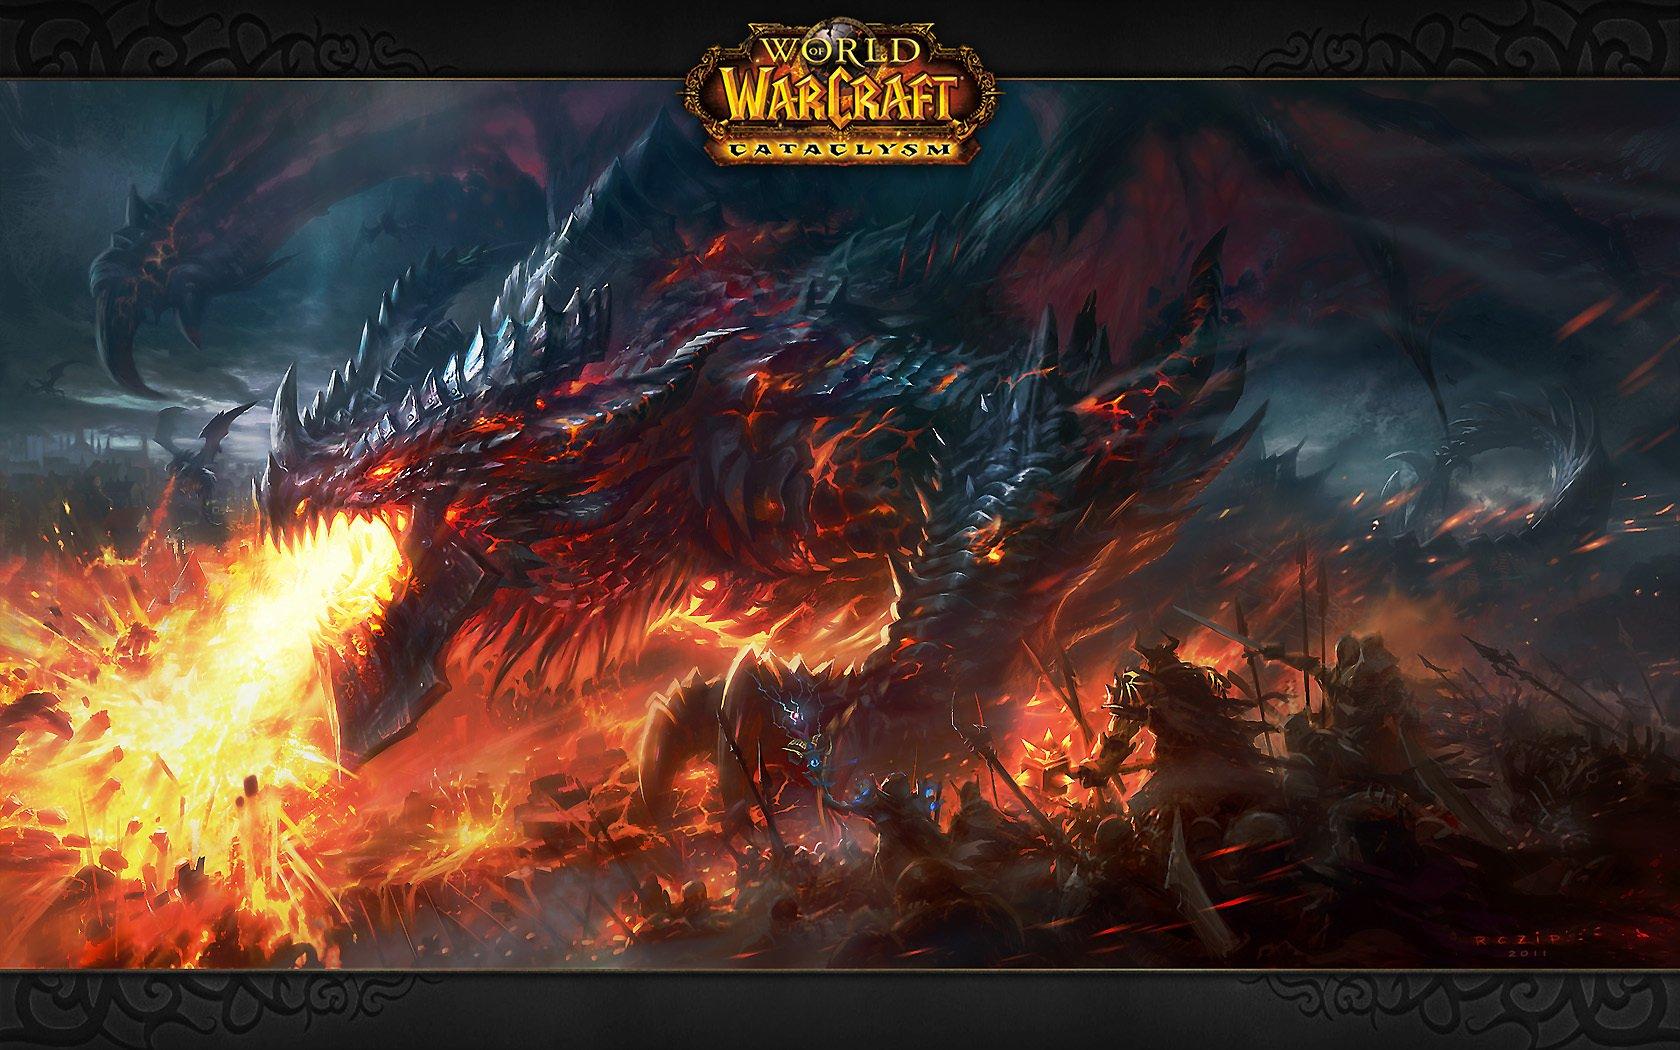 World Of Warcraft Cataclysm Fondo De Pantalla And Fondo De